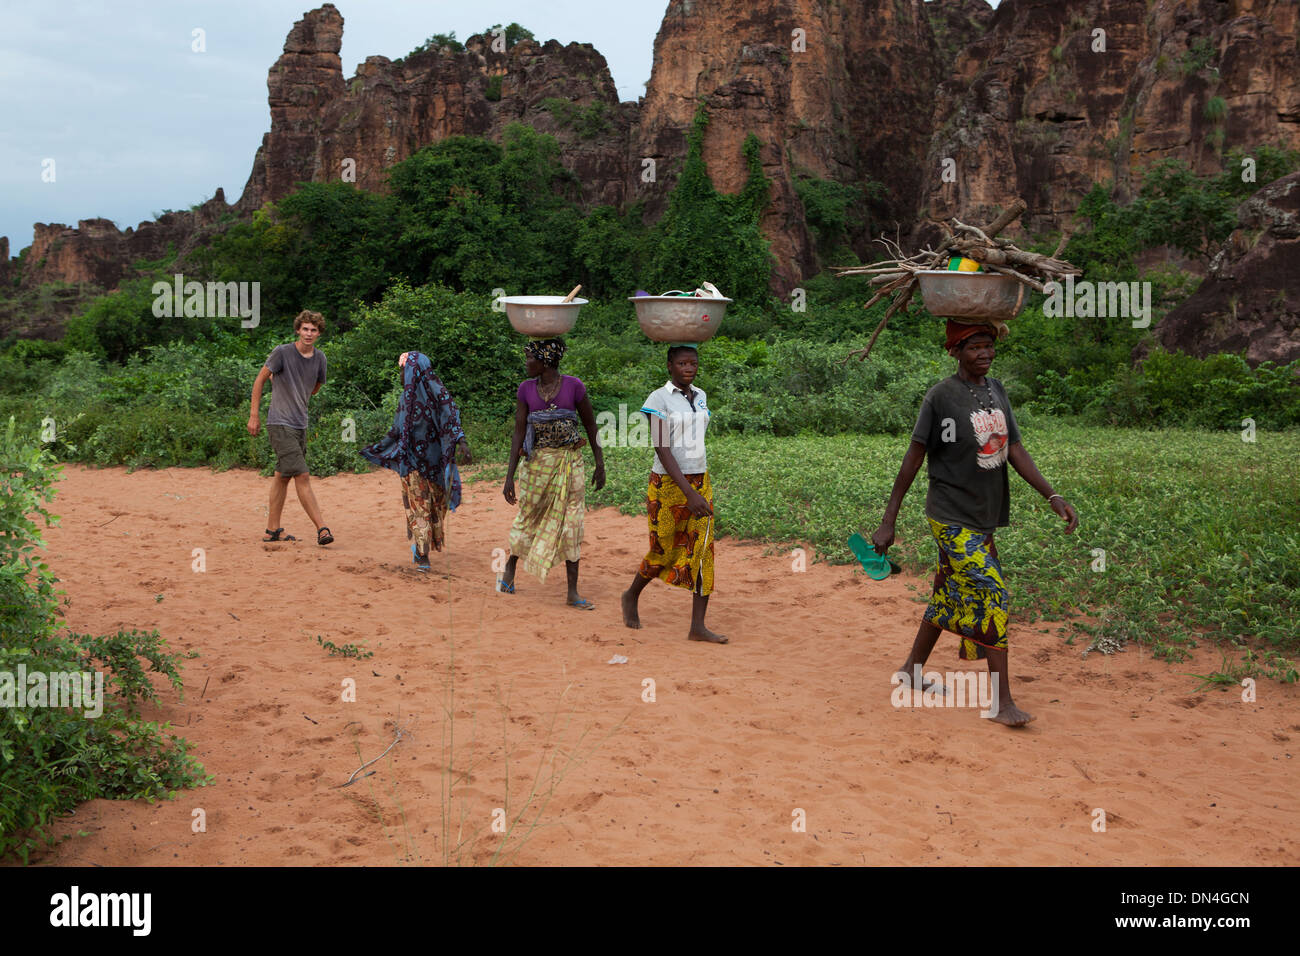 The Peaks of Sindou, Burkina Faso, West Africa. - Stock Image